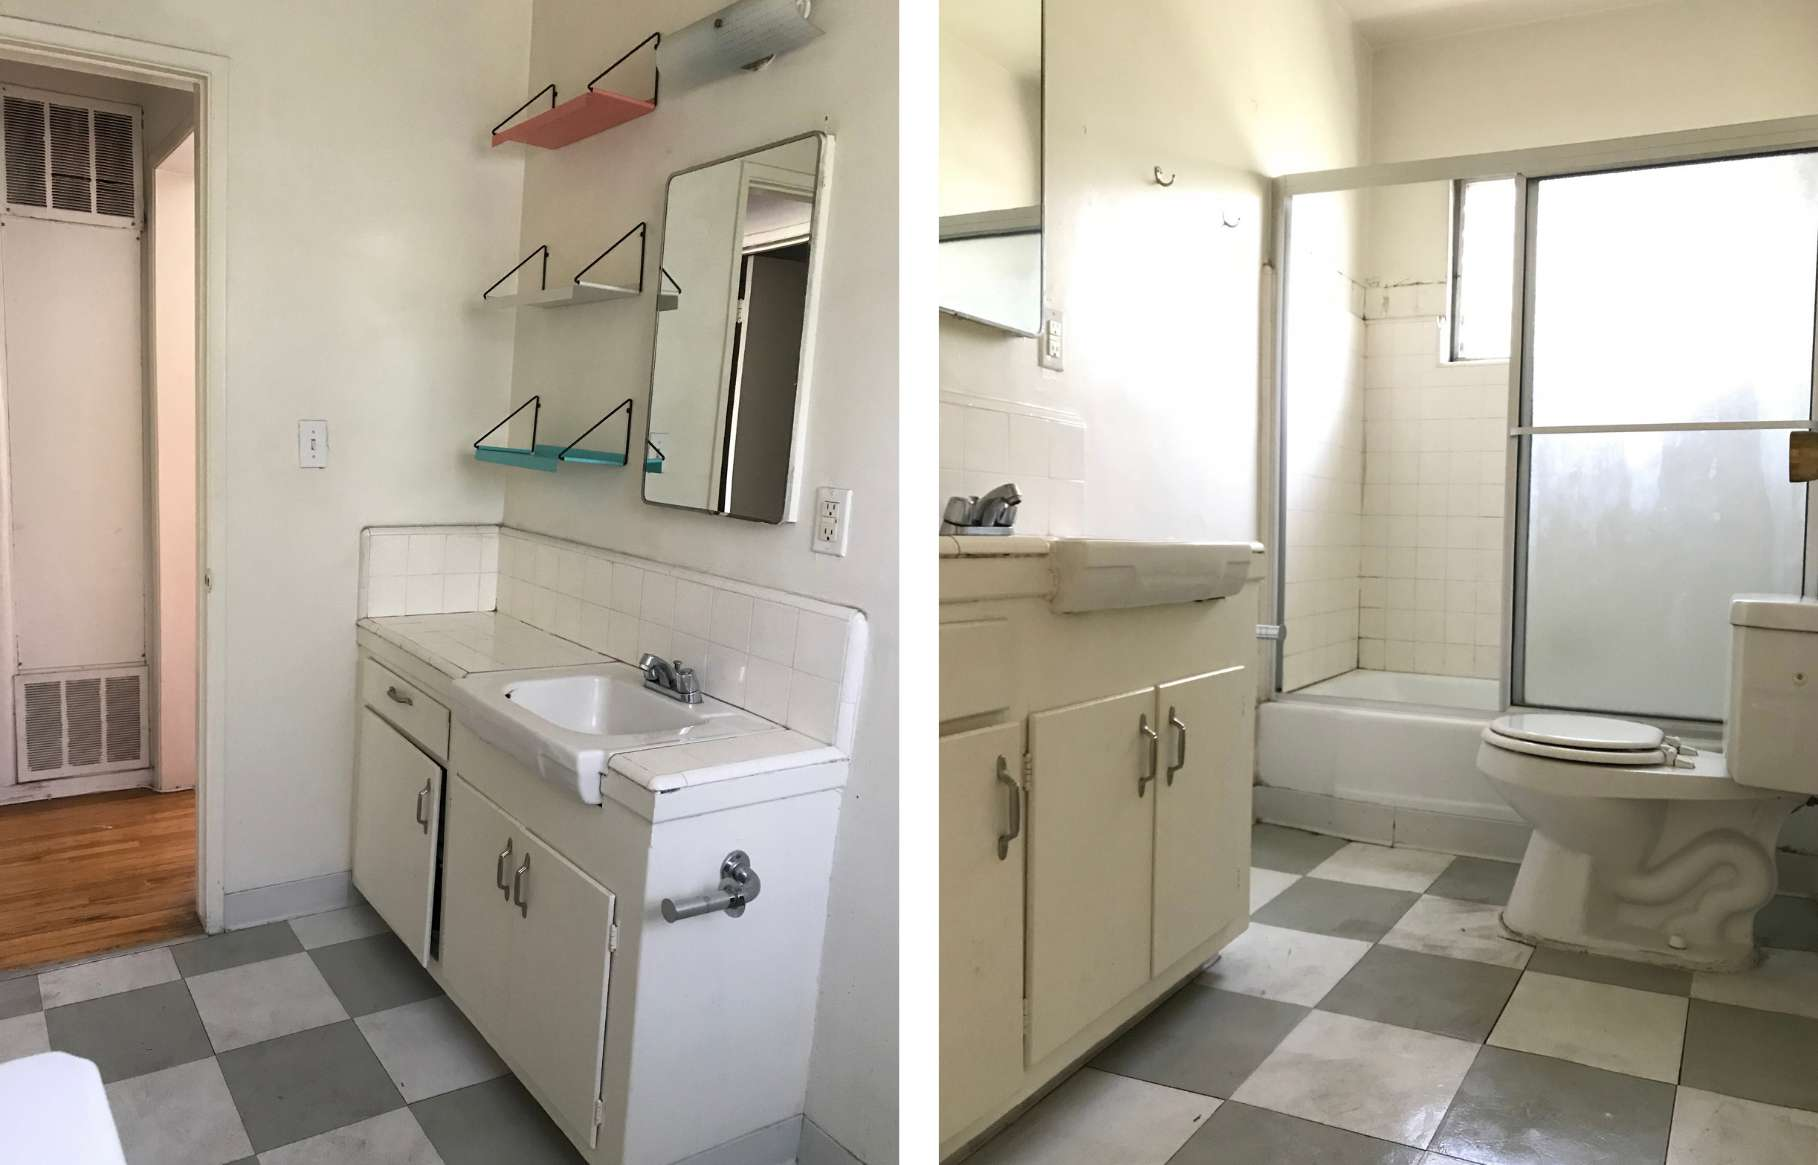 Dingy white bathroom in need of a renovation